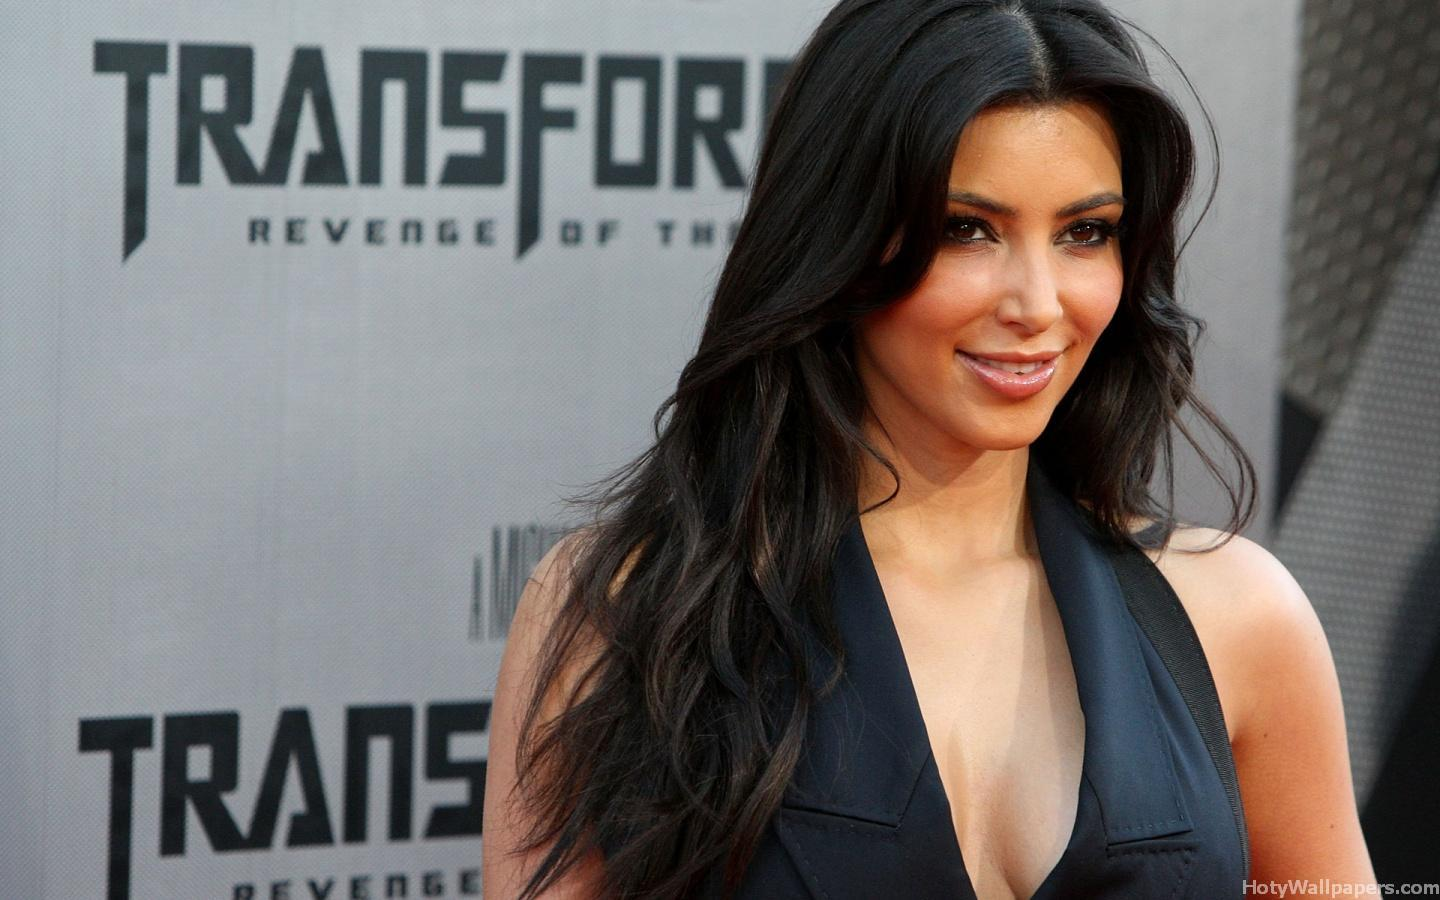 http://4.bp.blogspot.com/-y7v_edu0RhE/TXXNR3jRPxI/AAAAAAAAA6Y/W1ySN56j2yA/s1600/kim_kardashian_hot_Actress_wallpapers_37.jpg